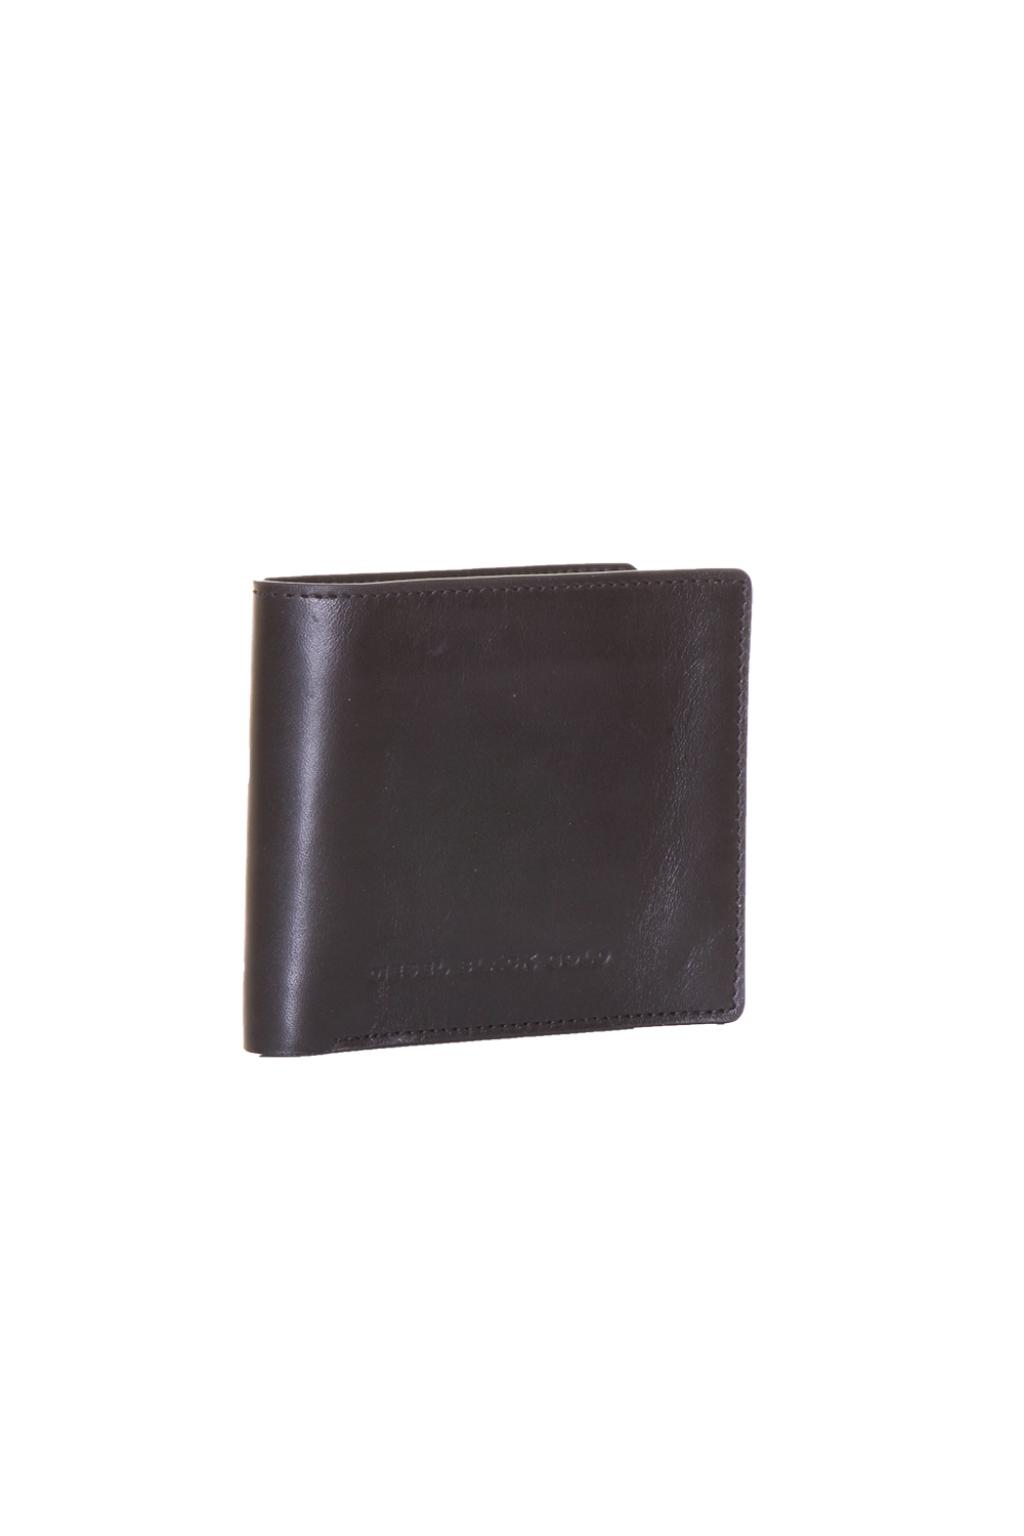 Diesel Black Gold Leather Wallet